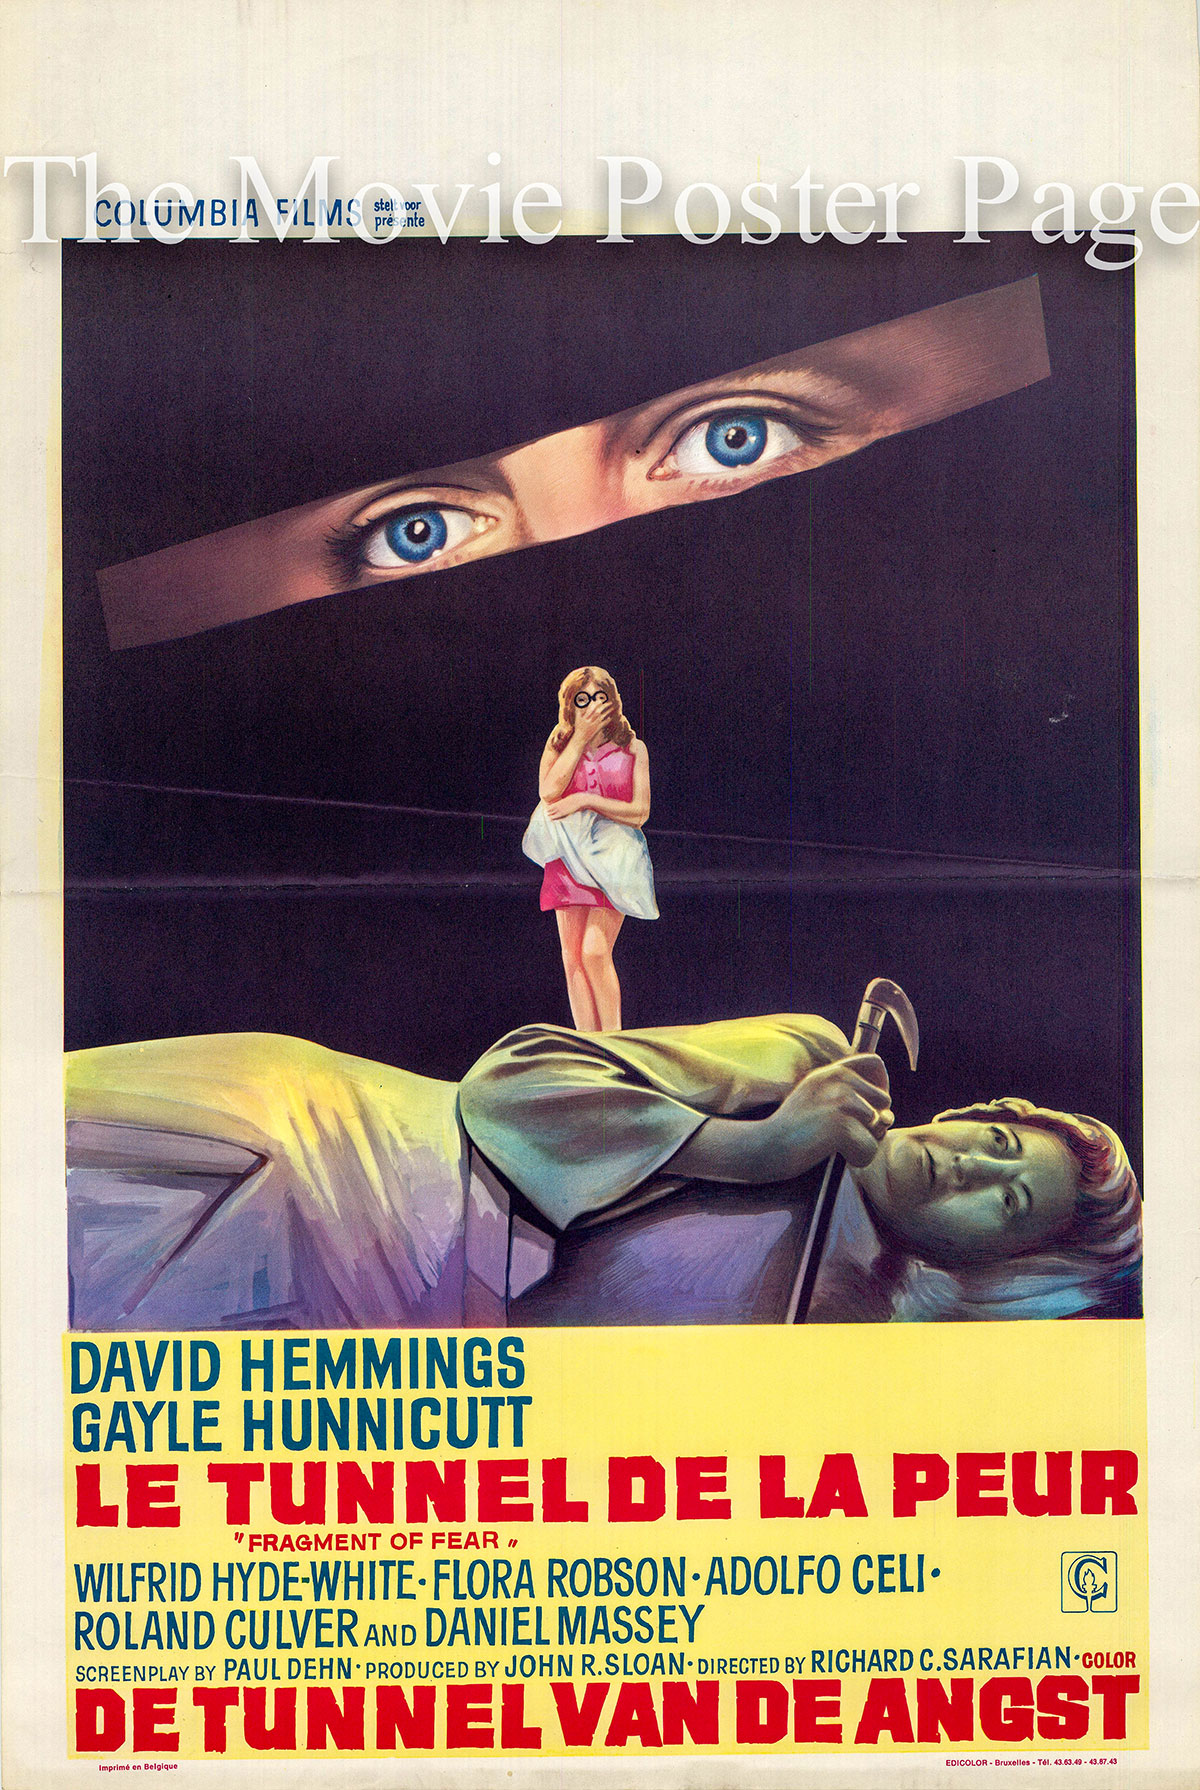 Pictured is a Belgian poster for the Richard C. Sarafian film Fragment of Fear starring David Hemmings as Tim Brett.